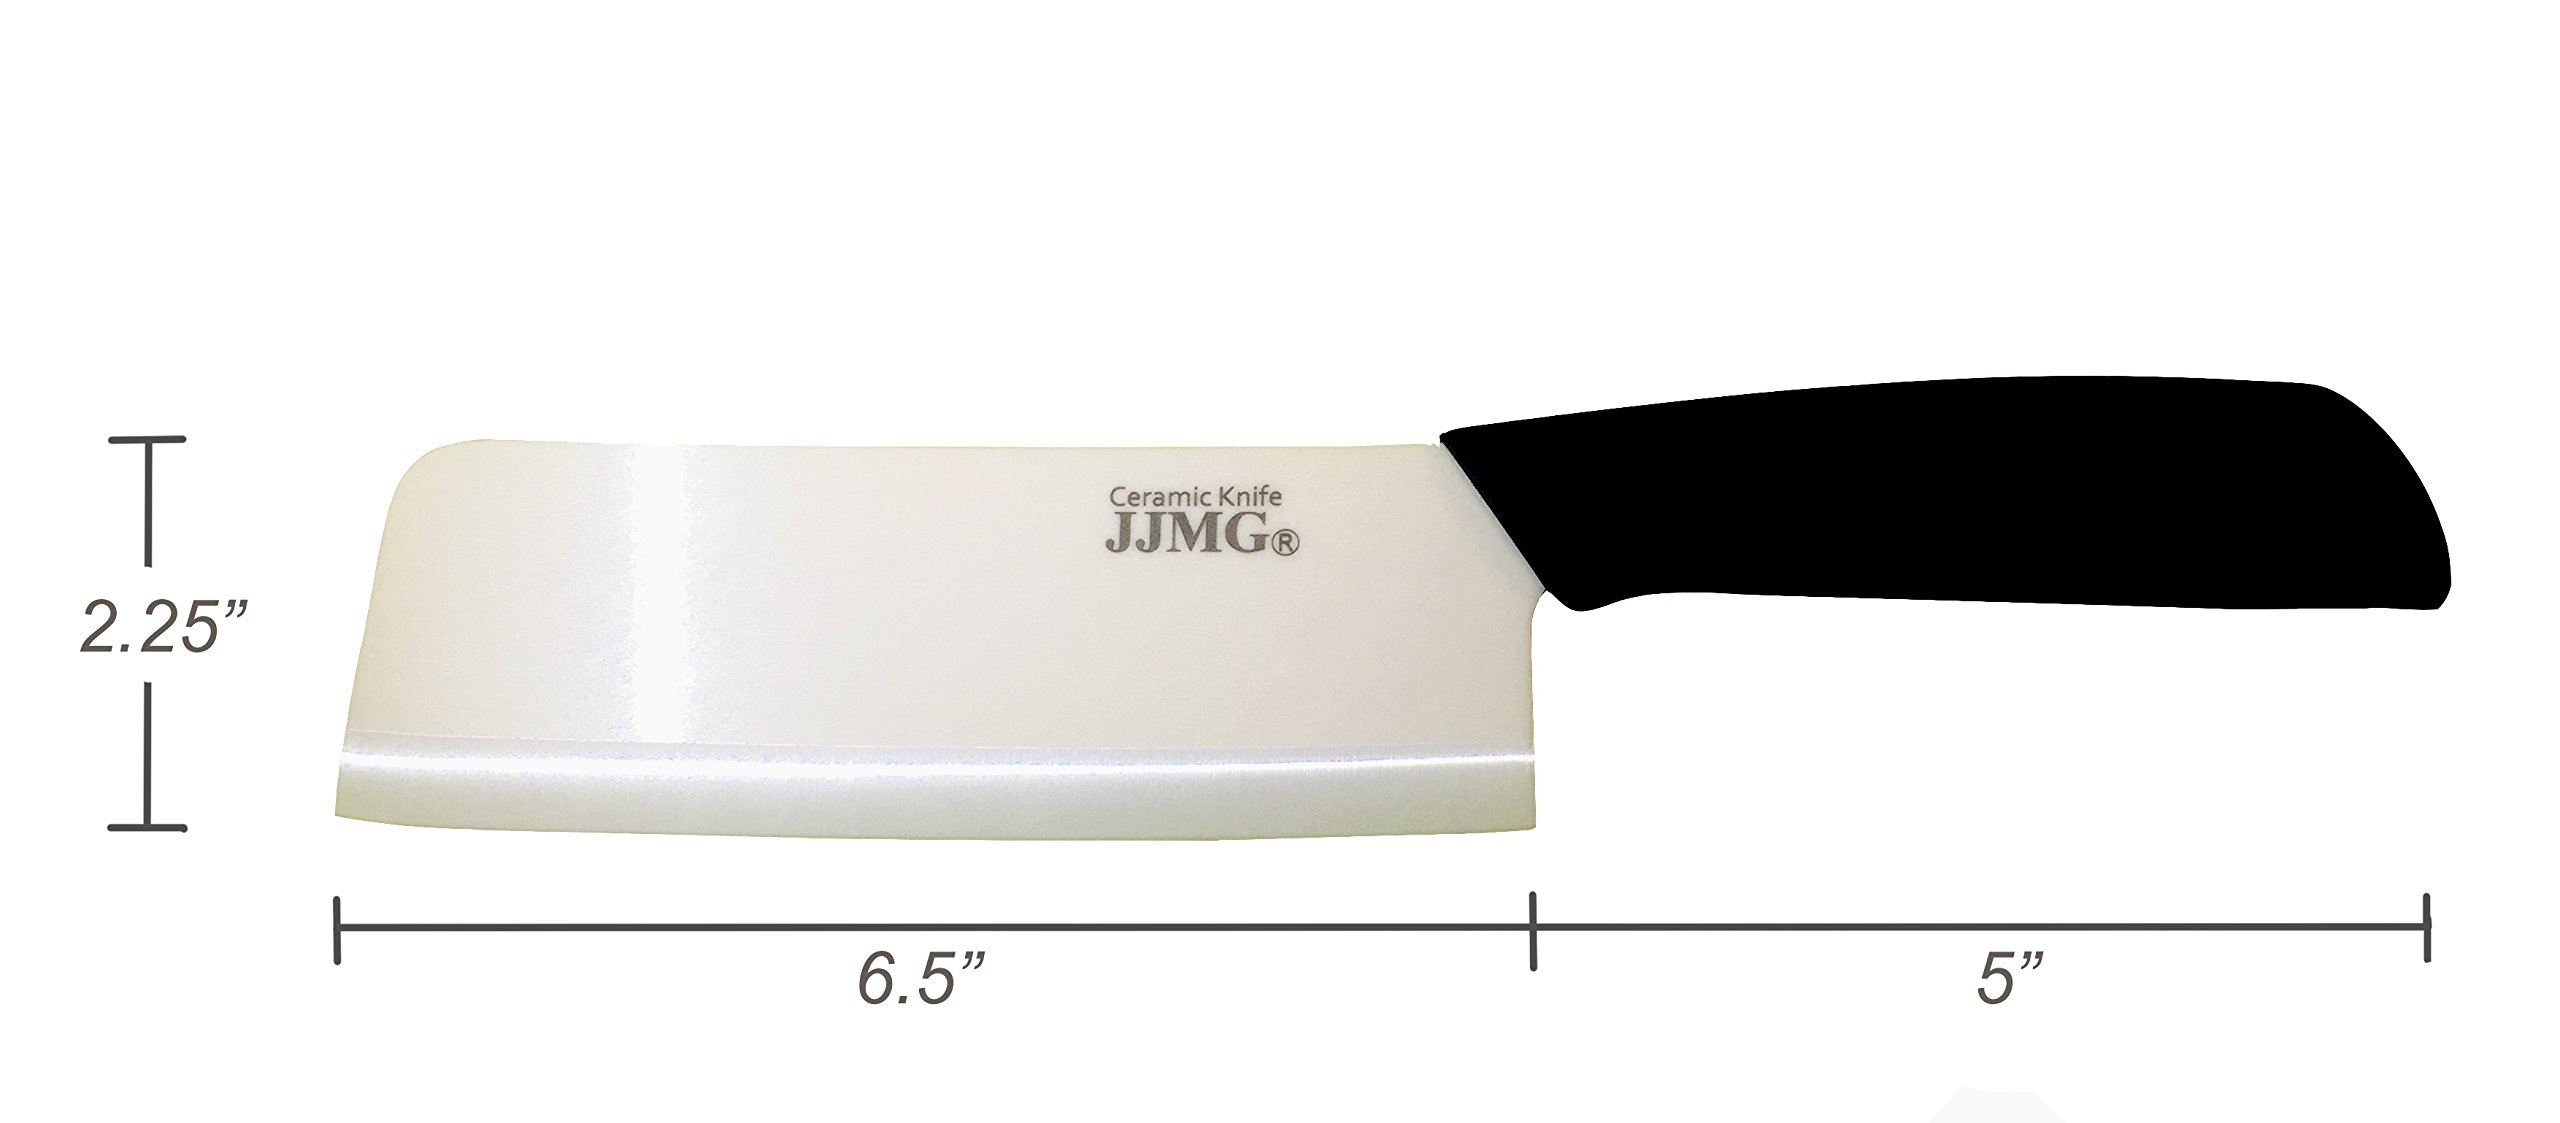 JJMG Ceramic Meat Cleaver Knife Sharp Durable Twice Thicker than Leading Brands non-slip grip Handle Zirconium Blade Cut… 5 SHARP & DURABLE LONG LASTING SHARPNESS: Perfect for Cutting Slicing Mincing & Dicing Meat Cheese and Vegetables. Made of High Quality Ceramic, 60 times more Wear-Resistant than Metal knifes. Easy to Maintain, Holds its Sharp Edge. The knifes blades are made by Zirconium, only diamonds are harder, and stays sharp 15 times longer. NO RUST & BPA-FREE: Rust Resistant, Anti-acid and Alkali Material, Non-toxic, No Contamination, No Metal smell, Easy to Use. will retain its original sharpness up to 15 times longer than steel blades. You will never need sharpening any more! NO OXIDATION: Keep your vegetables free from oxidation when cutting with these ceramic knifes. Keep your vegetables meat & food fresh for a longer period of time.